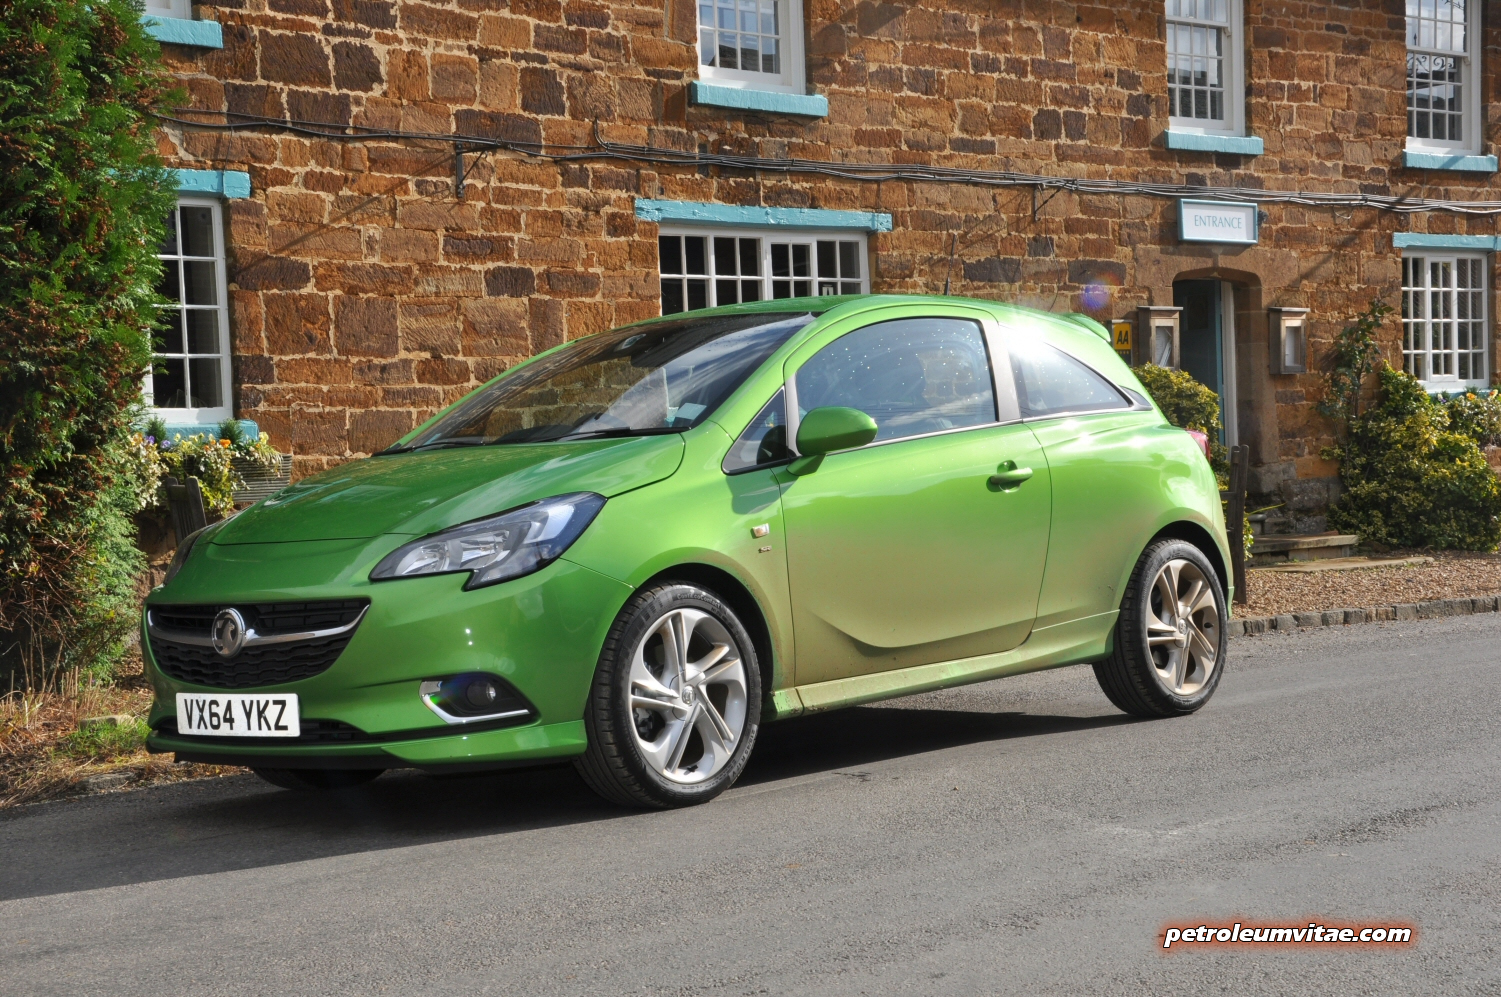 New-for-2015 Vauxhall Corsa: first impressions « Petroleum Vitae